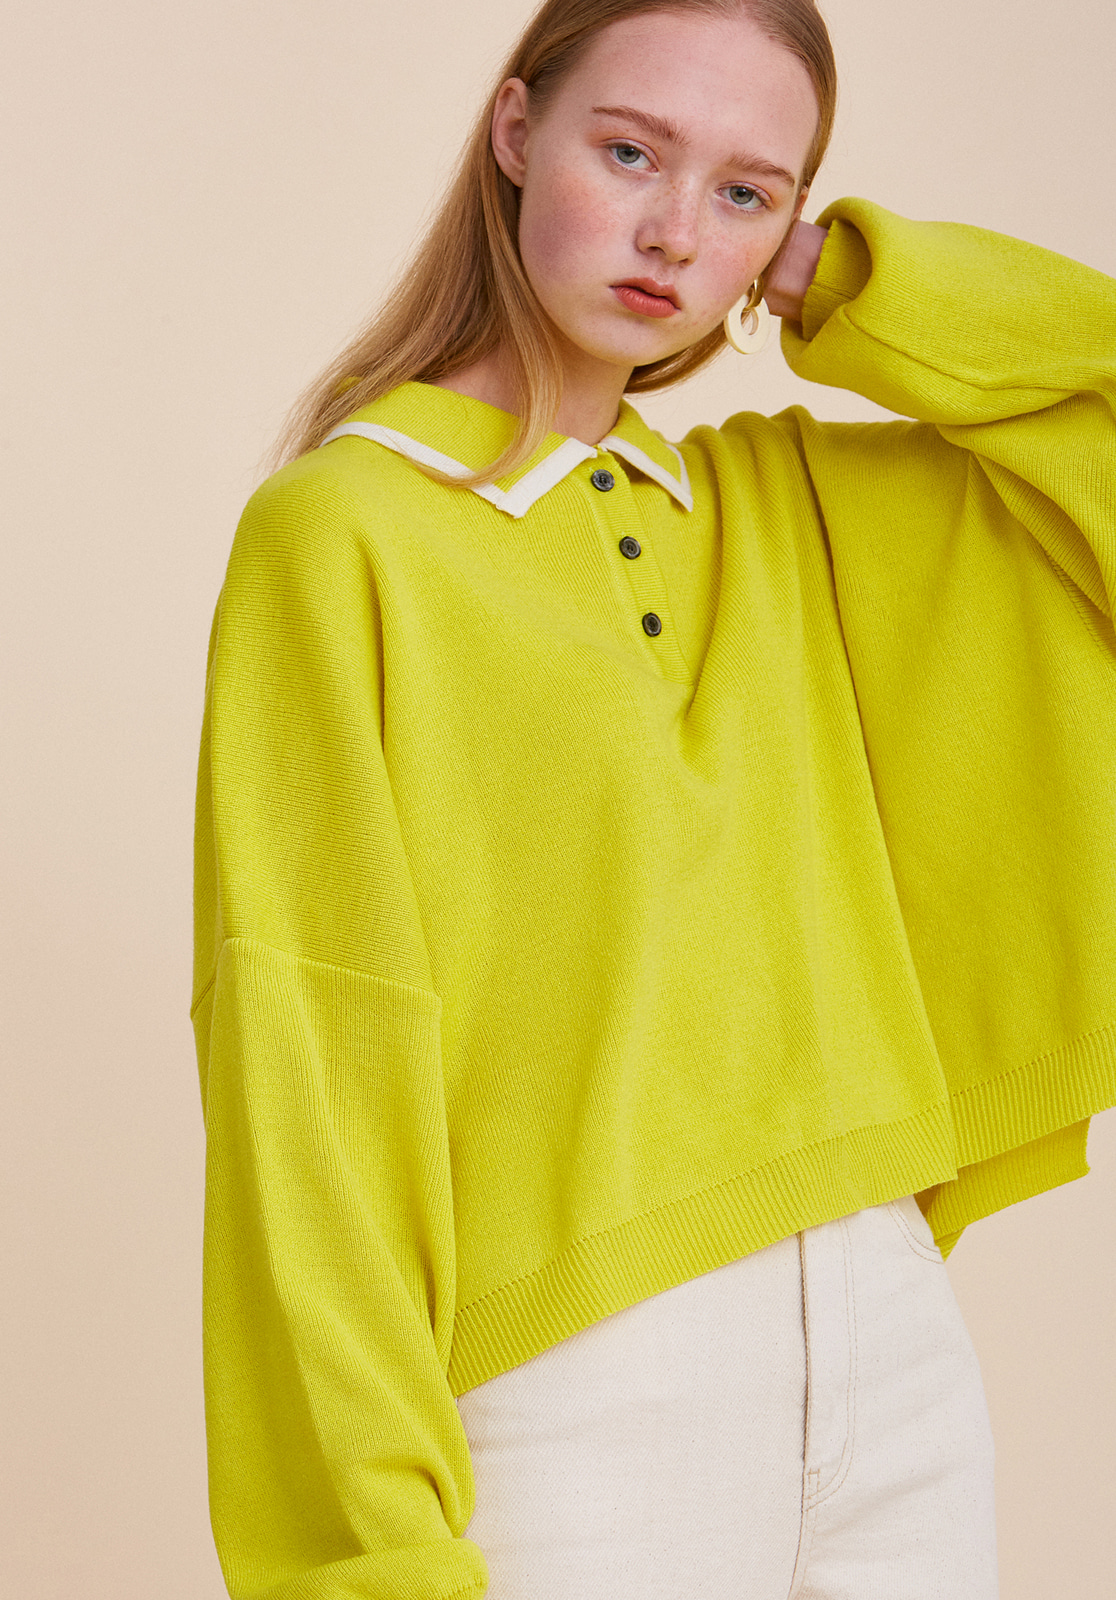 V567 OVER-FIT CROP COLLAR KNIT  YELLOW